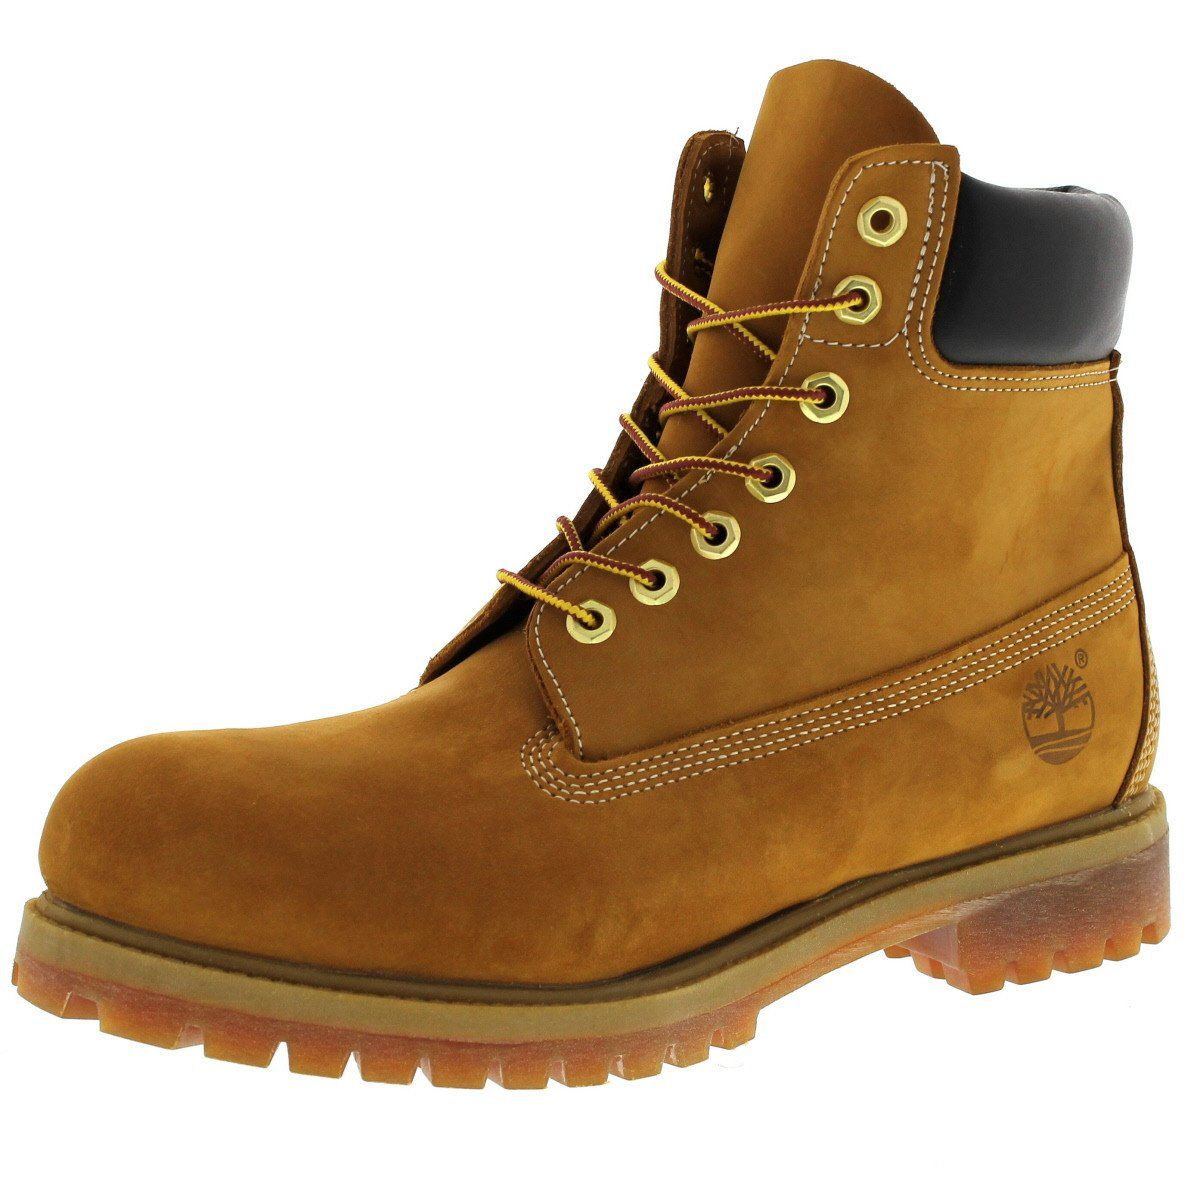 bbebe4a7c5b Men'S 6-Inch Scuff Proof Waterproof Boot - Wheat in 2019 | boots ...